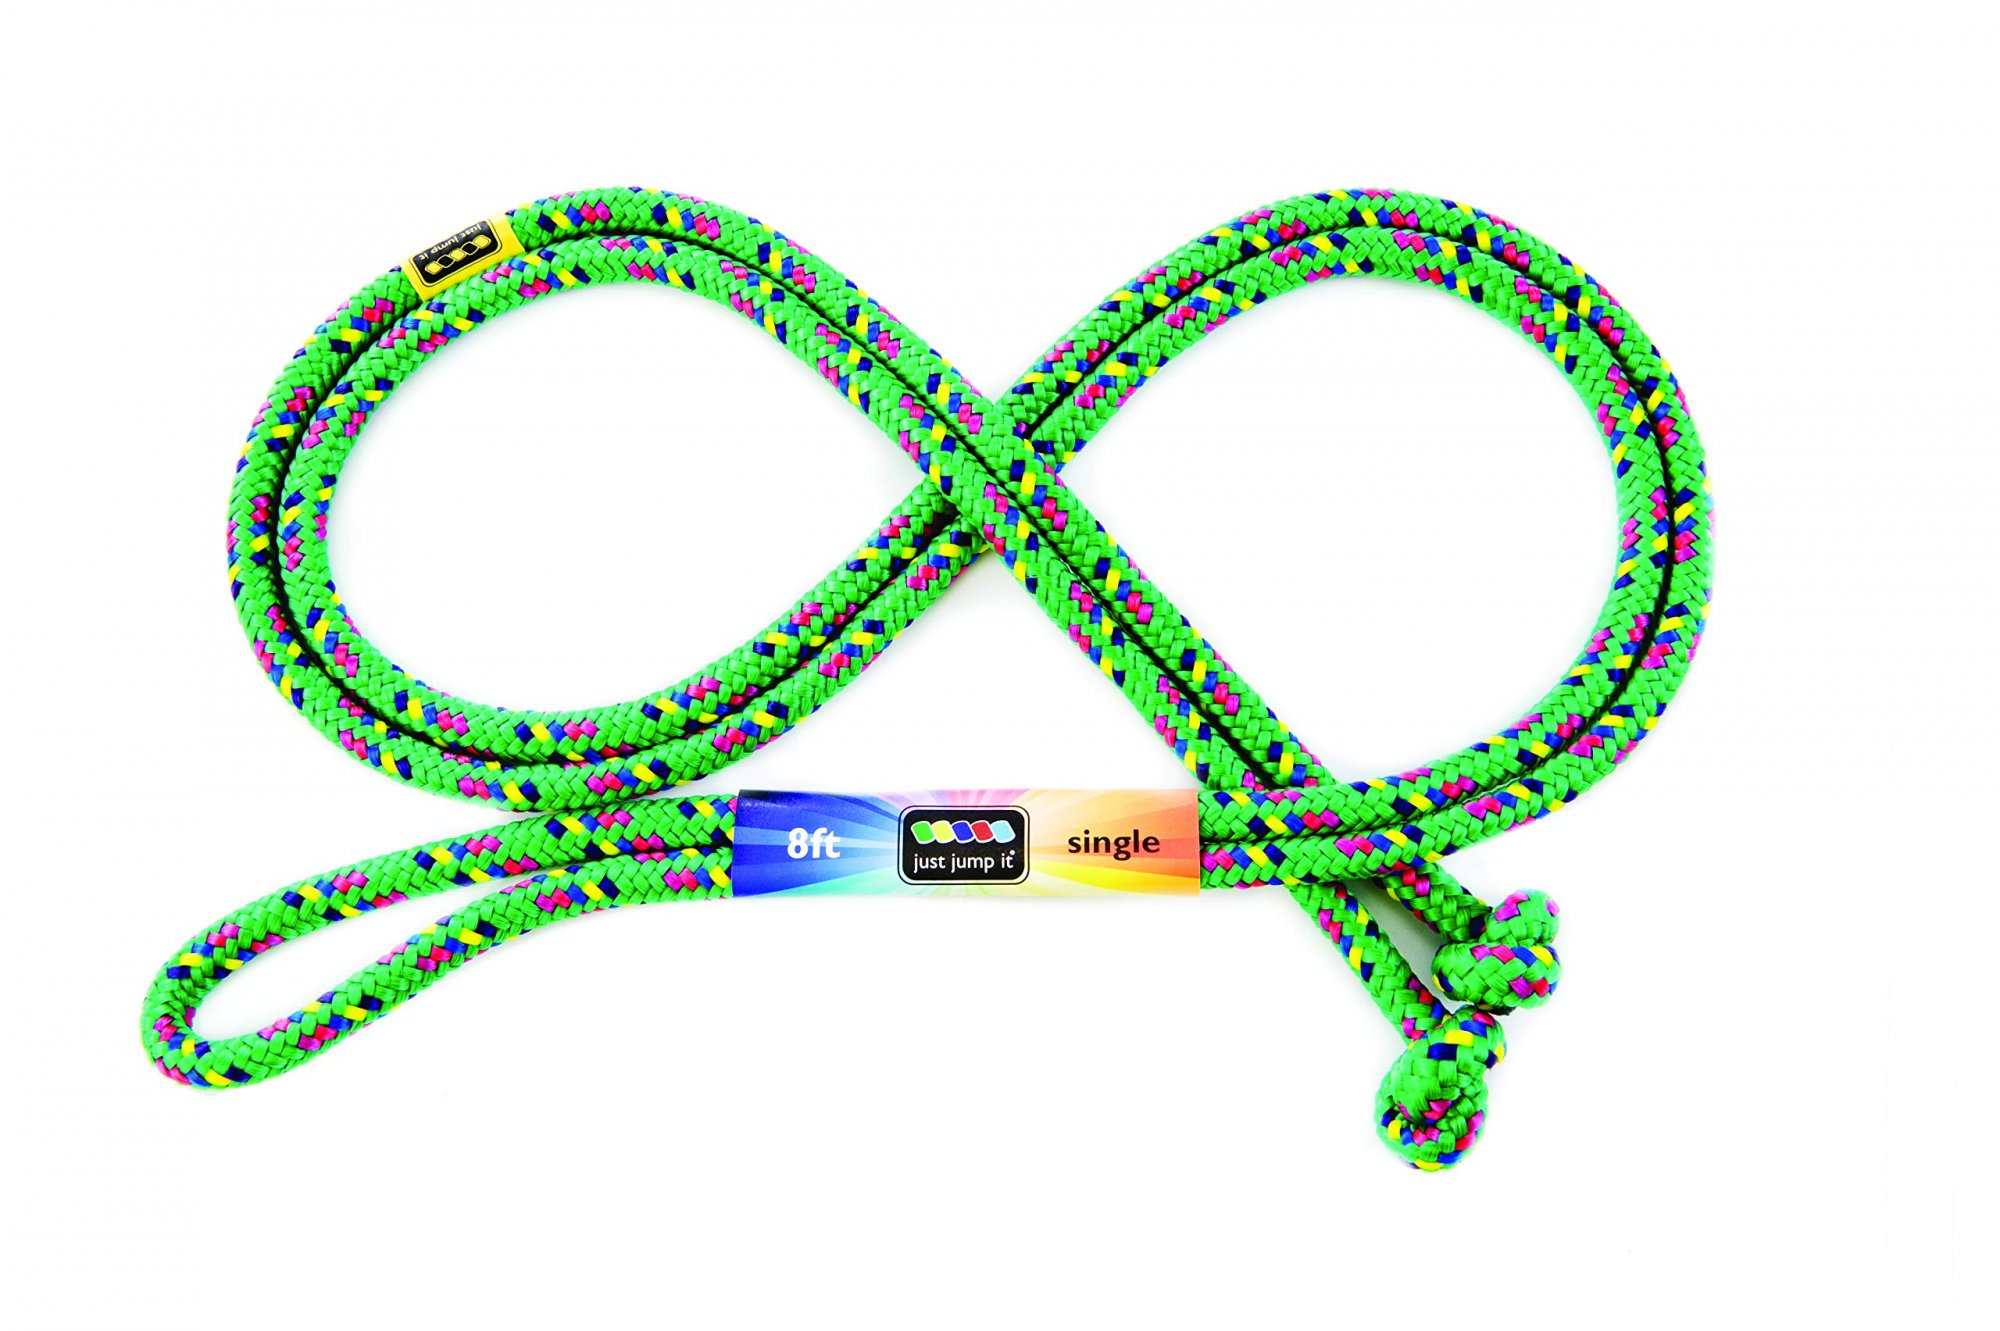 8ft Jump Rope- green confetti